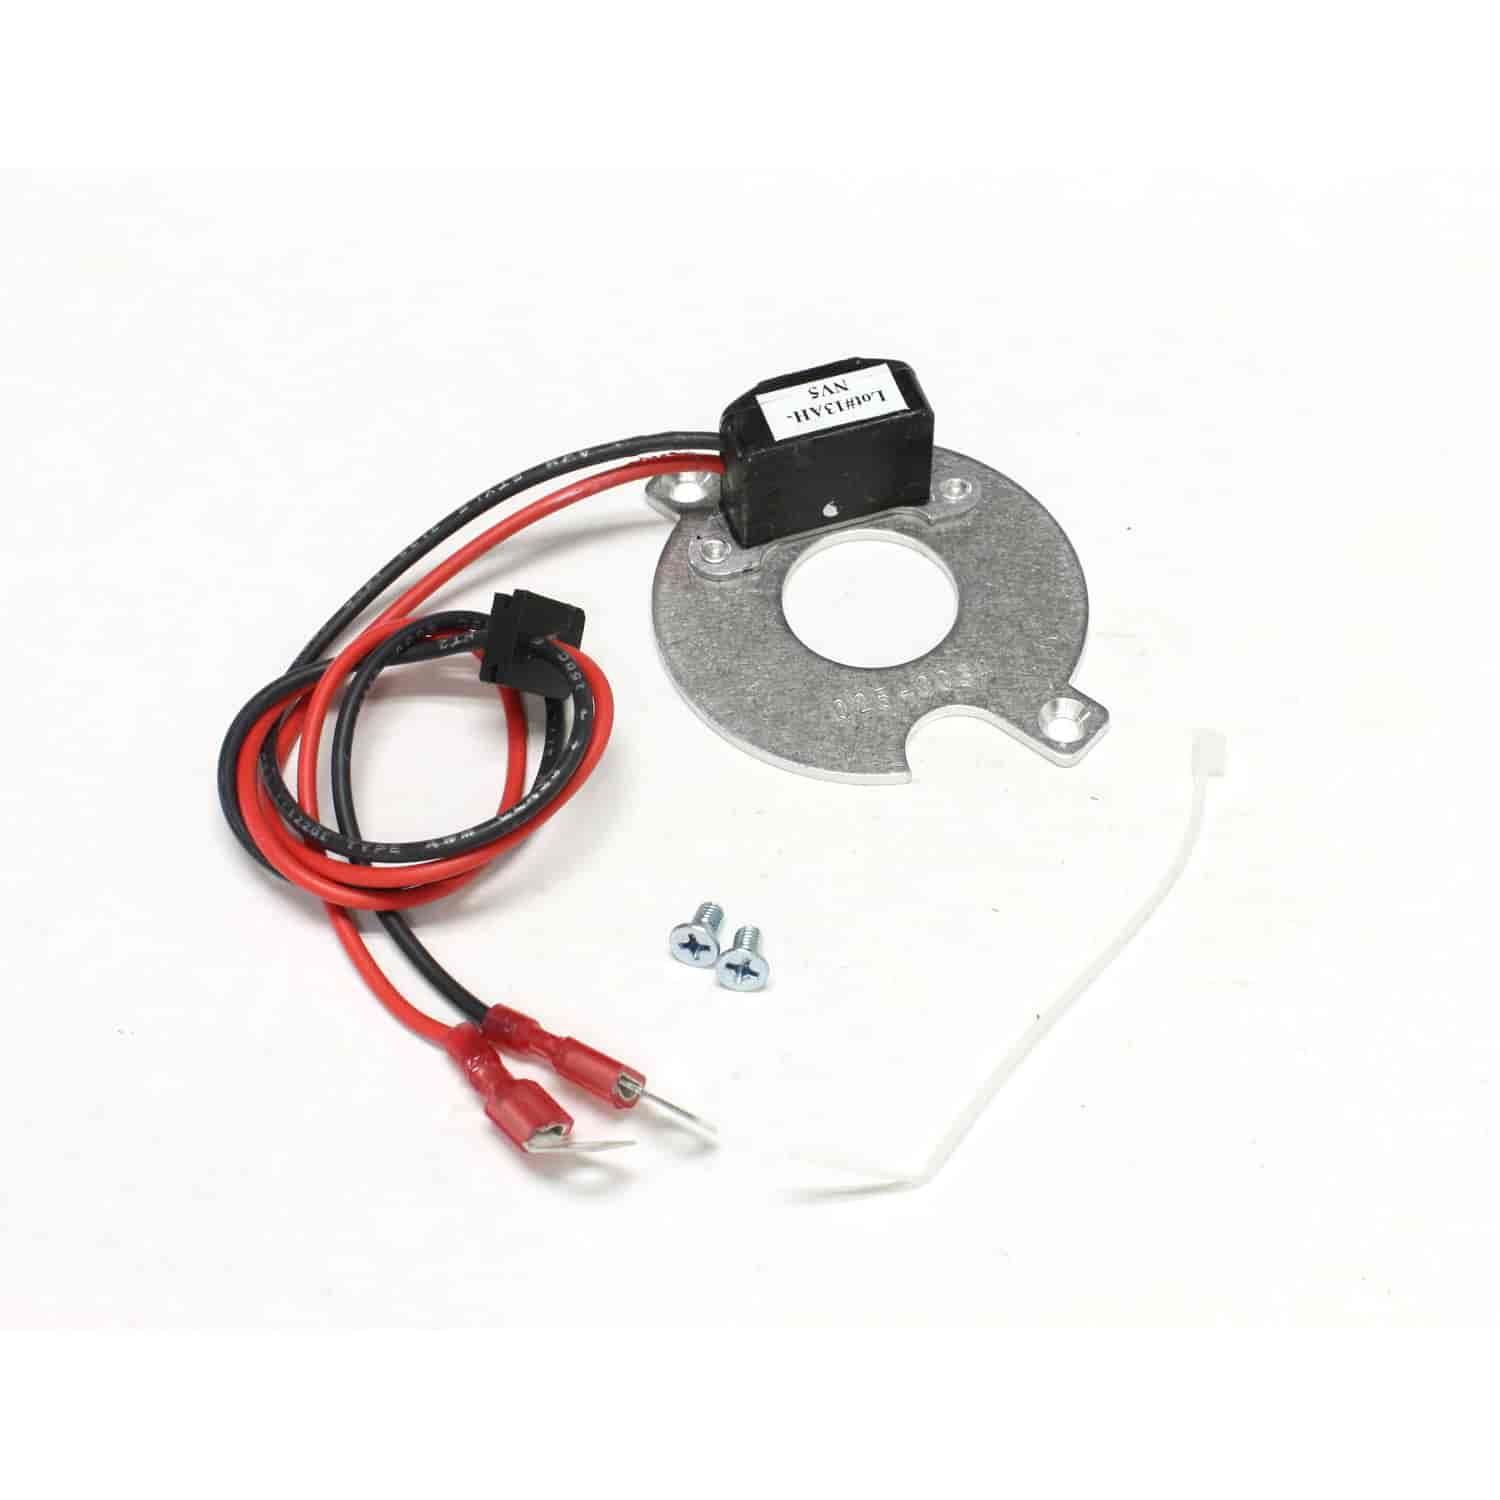 Pertronix 025 003a Electronic Ignition Module Fits D41 01a 05a Wiring Diagram Ford